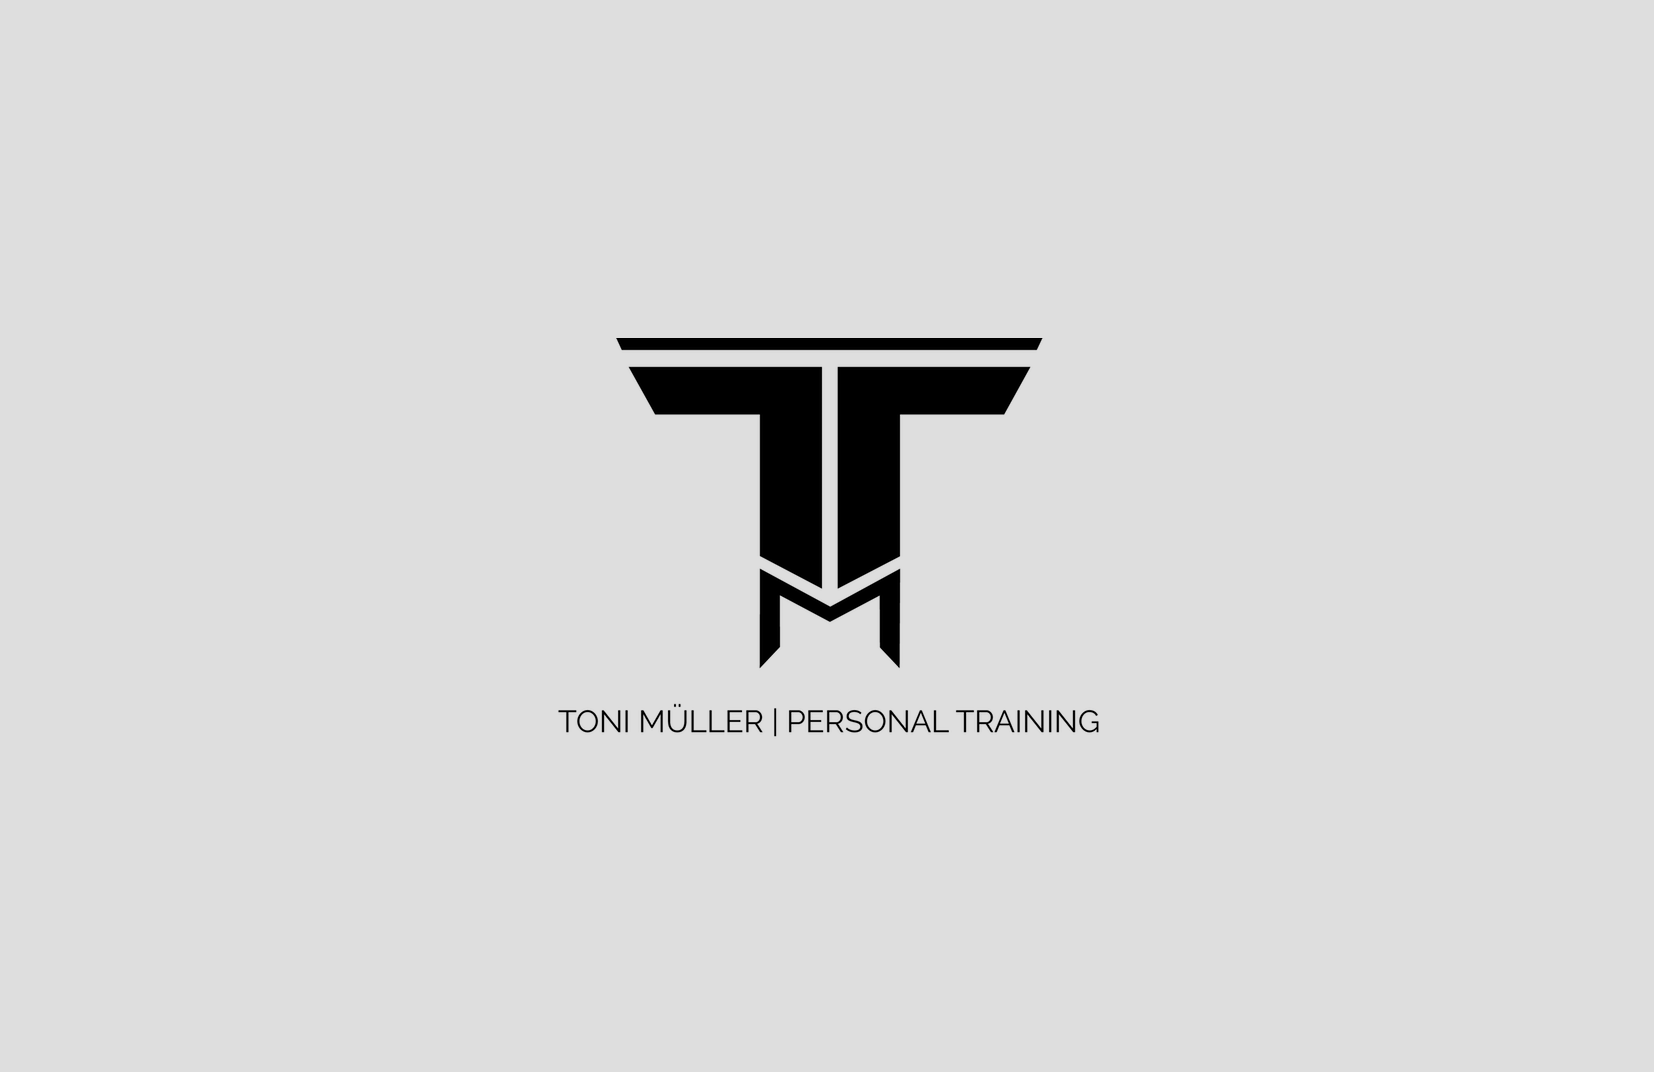 Toni Müller Personal Training